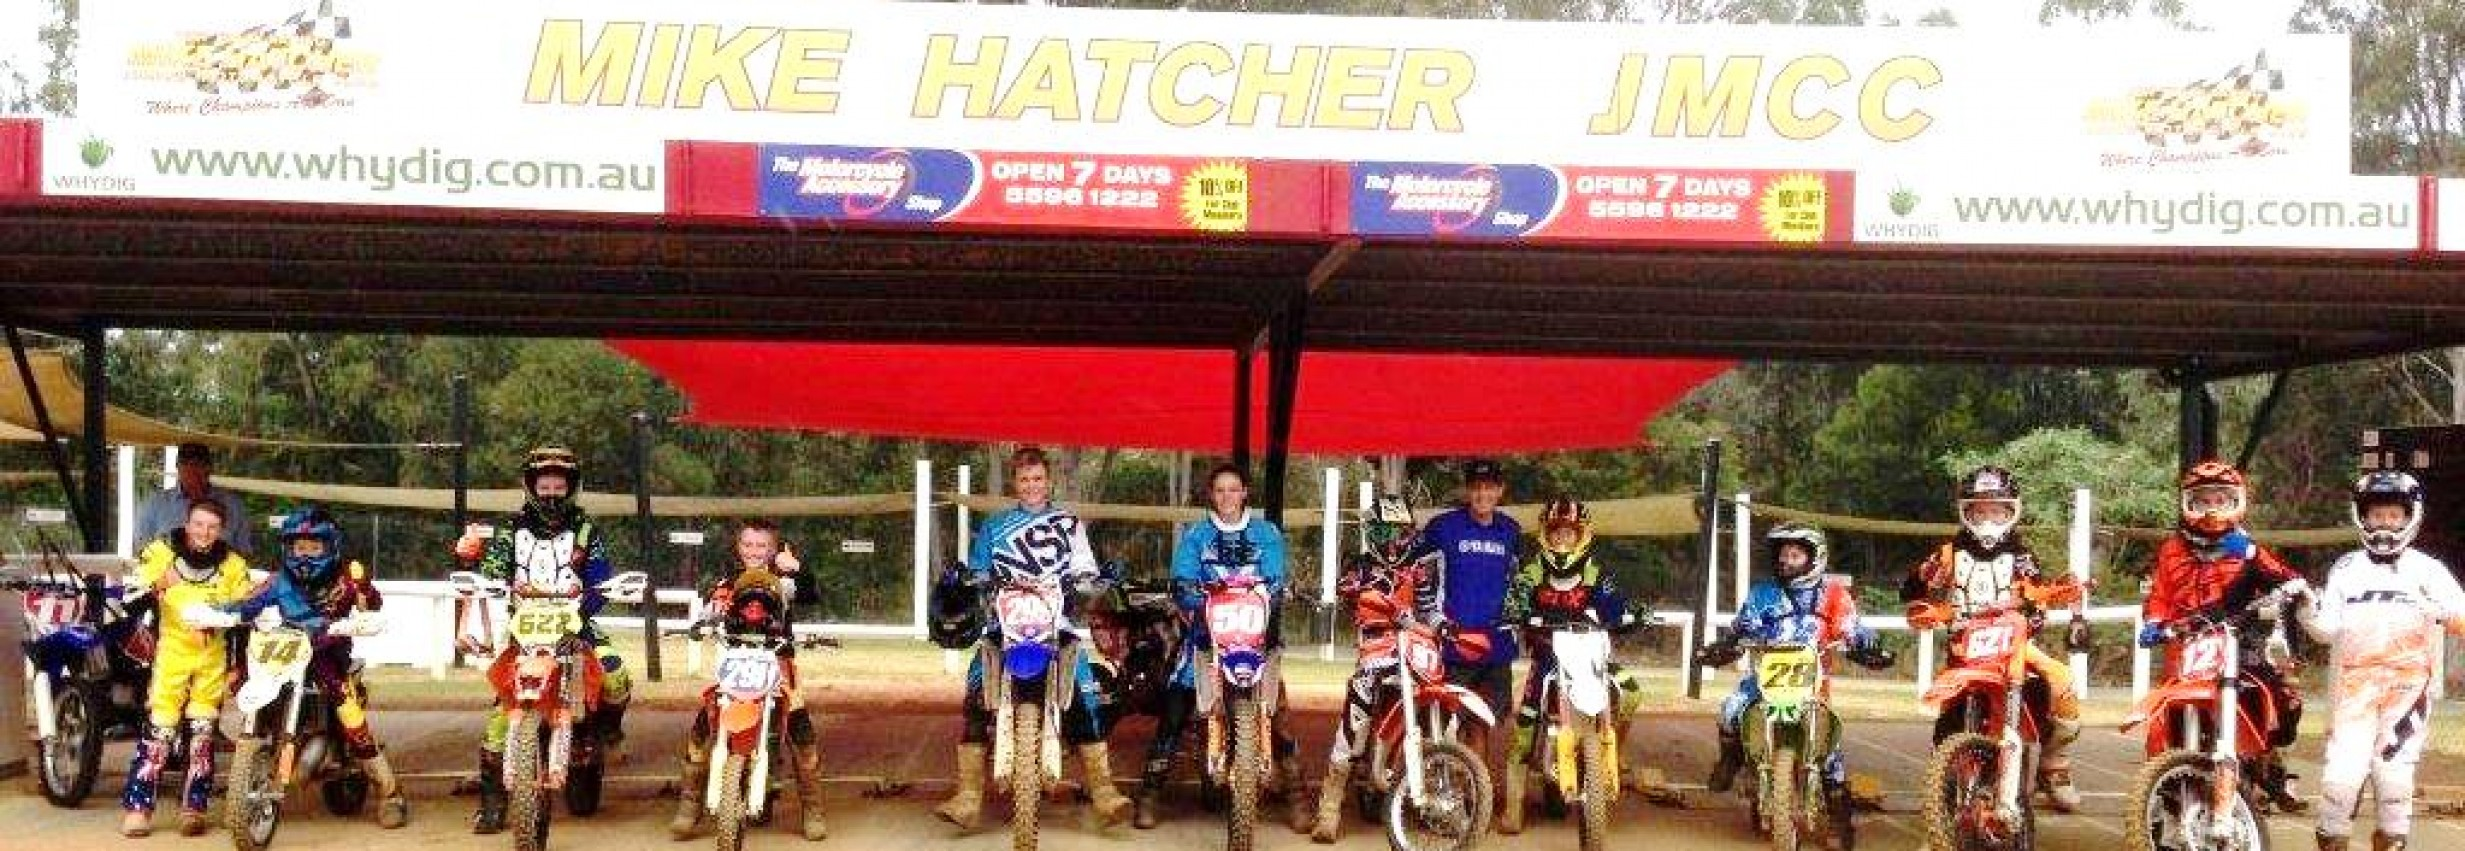 Mike Hatcher Junior Motorcycle Club